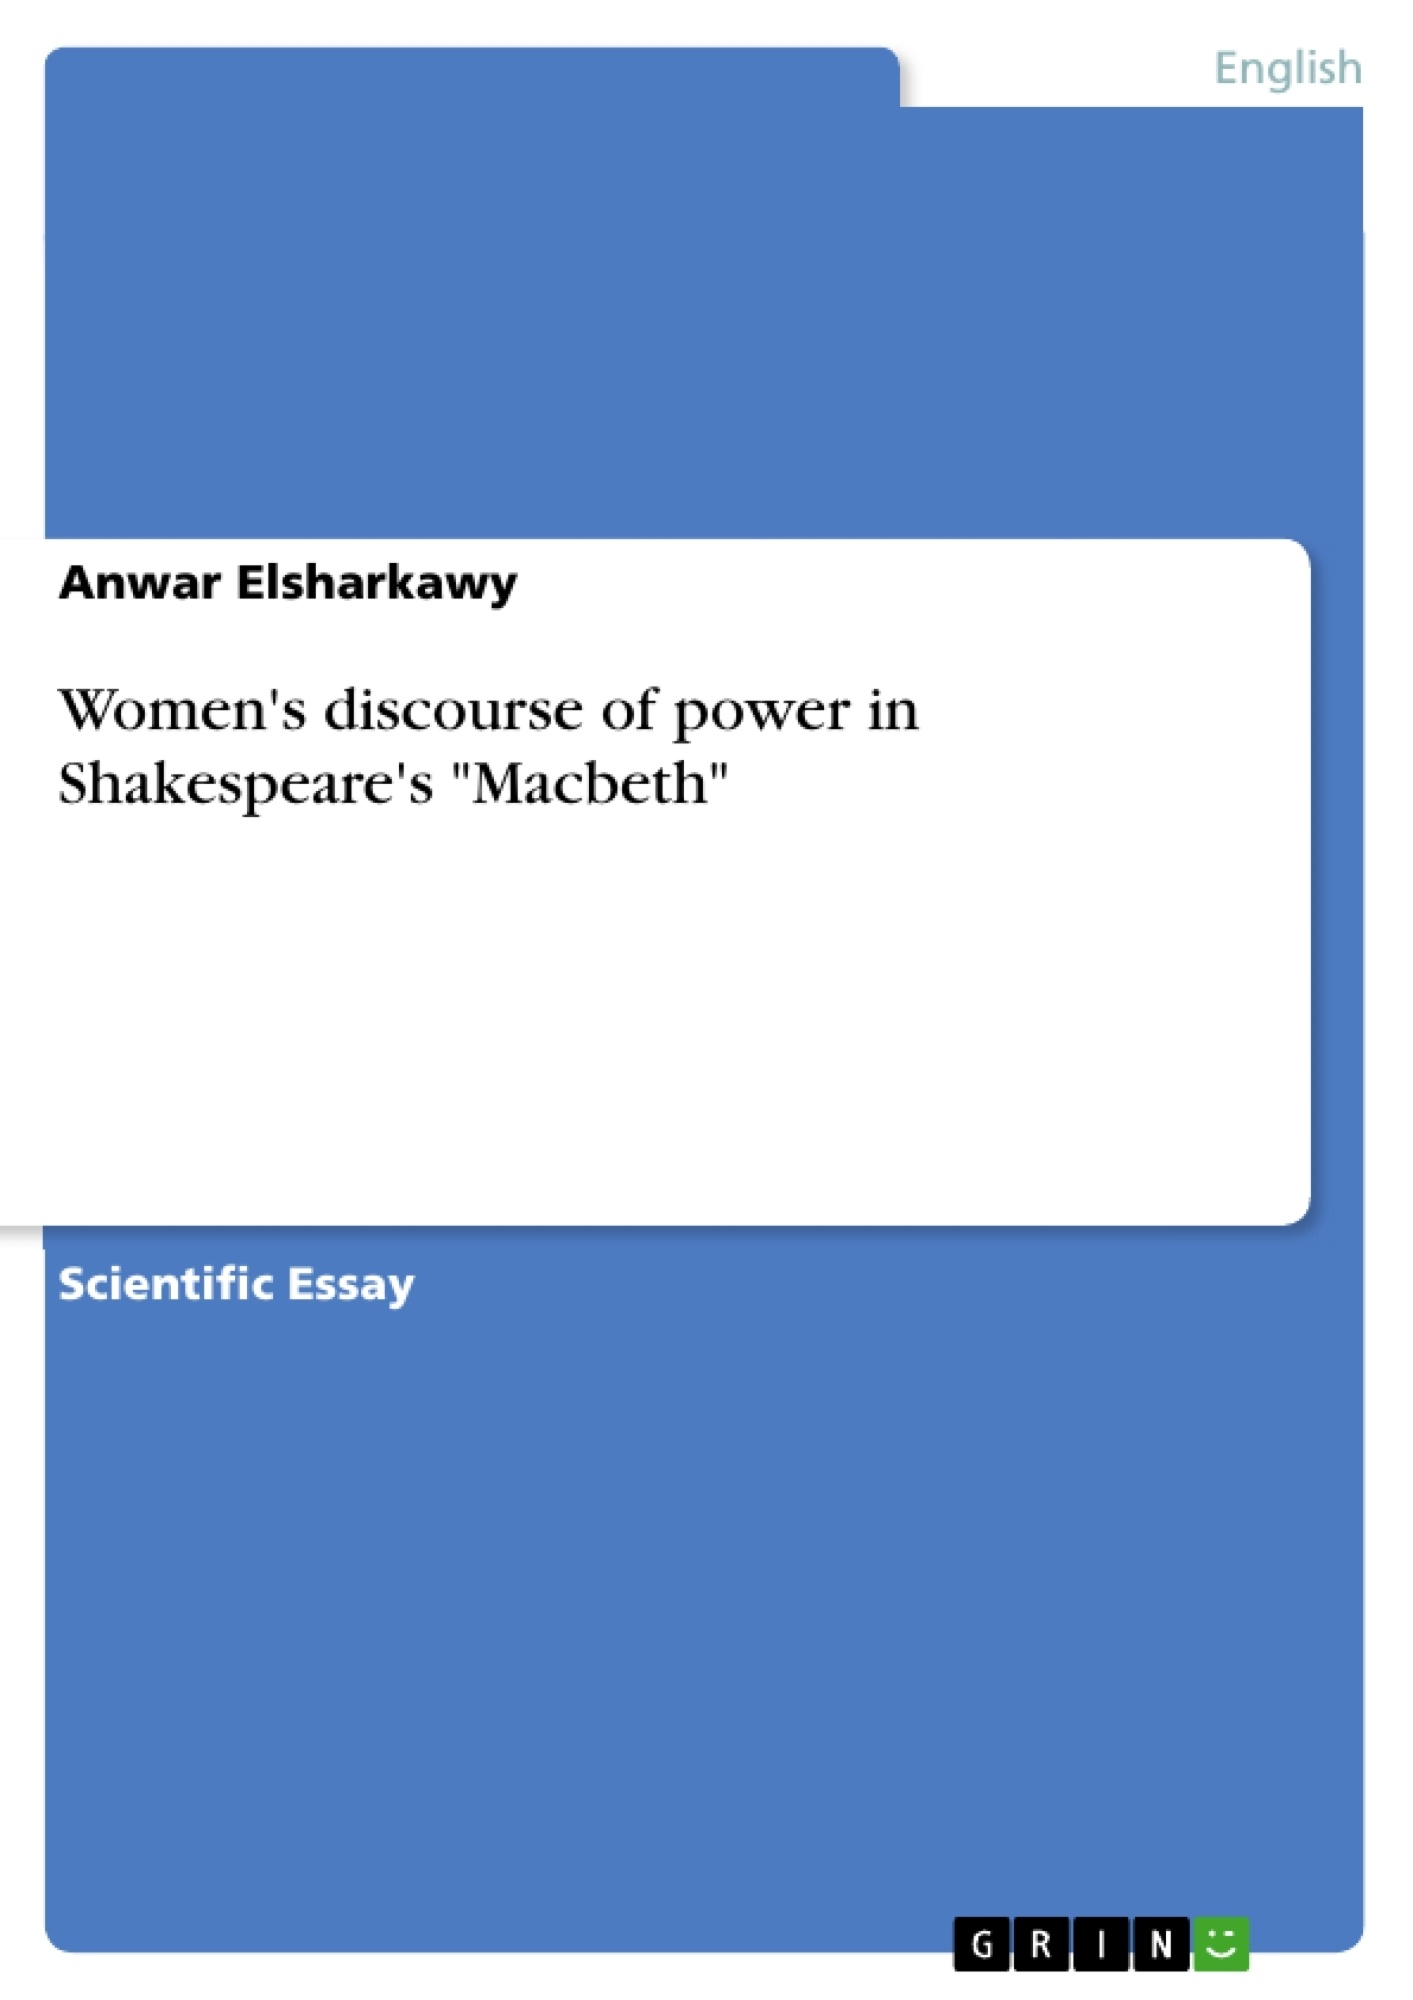 women s discourse of power in shakespeare s macbeth publish women s discourse of power in shakespeare s macbeth publish your master s thesis bachelor s thesis essay or term paper